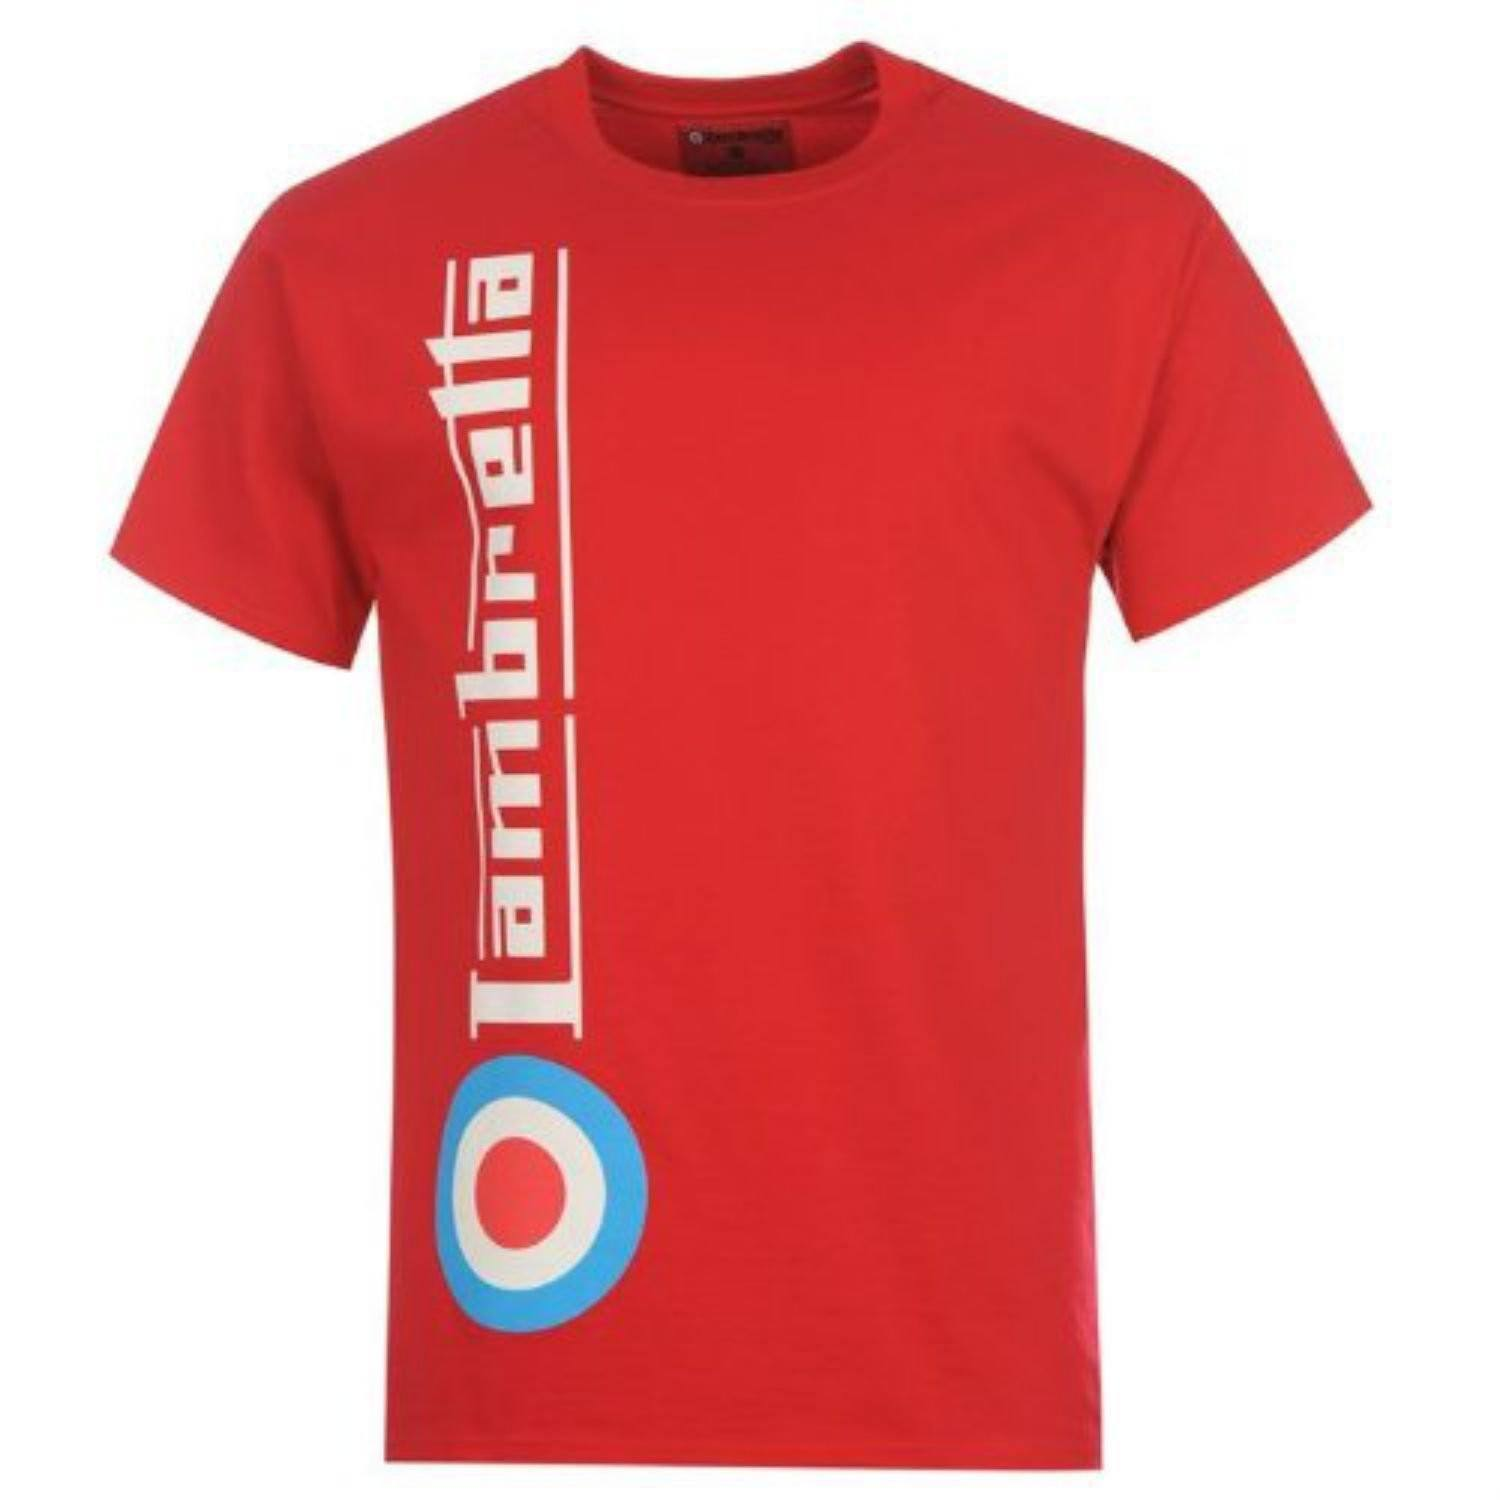 Lambretta Mens T Shirt 'Side Target' Design - Red - Ninostyle